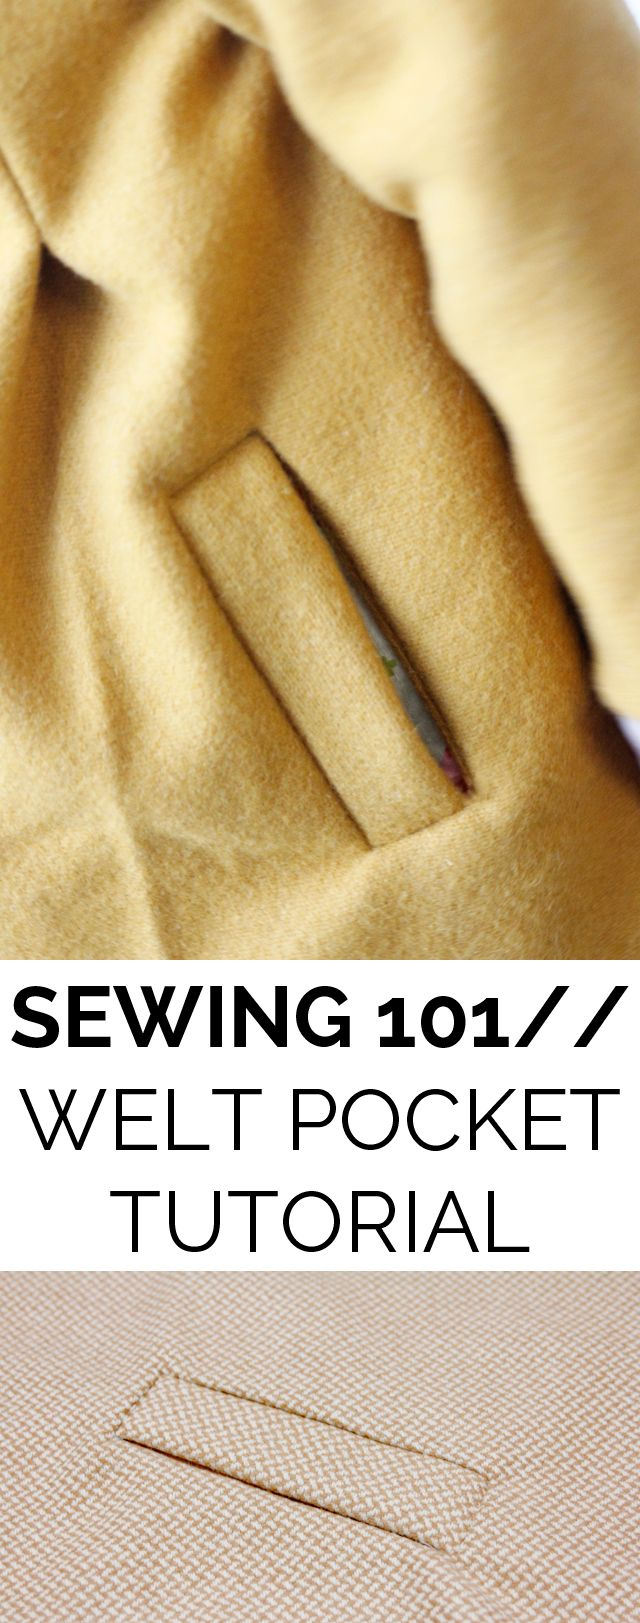 We're on Day 3 of the Icon Coat Sewalong! If you missed the first few days, check out this post about fabric selection and this post featuring a powder blue icon coat on a plus size model.  One of my favorite features of the Icon coat (And the Kennedy, too!) is the welt pockets. …